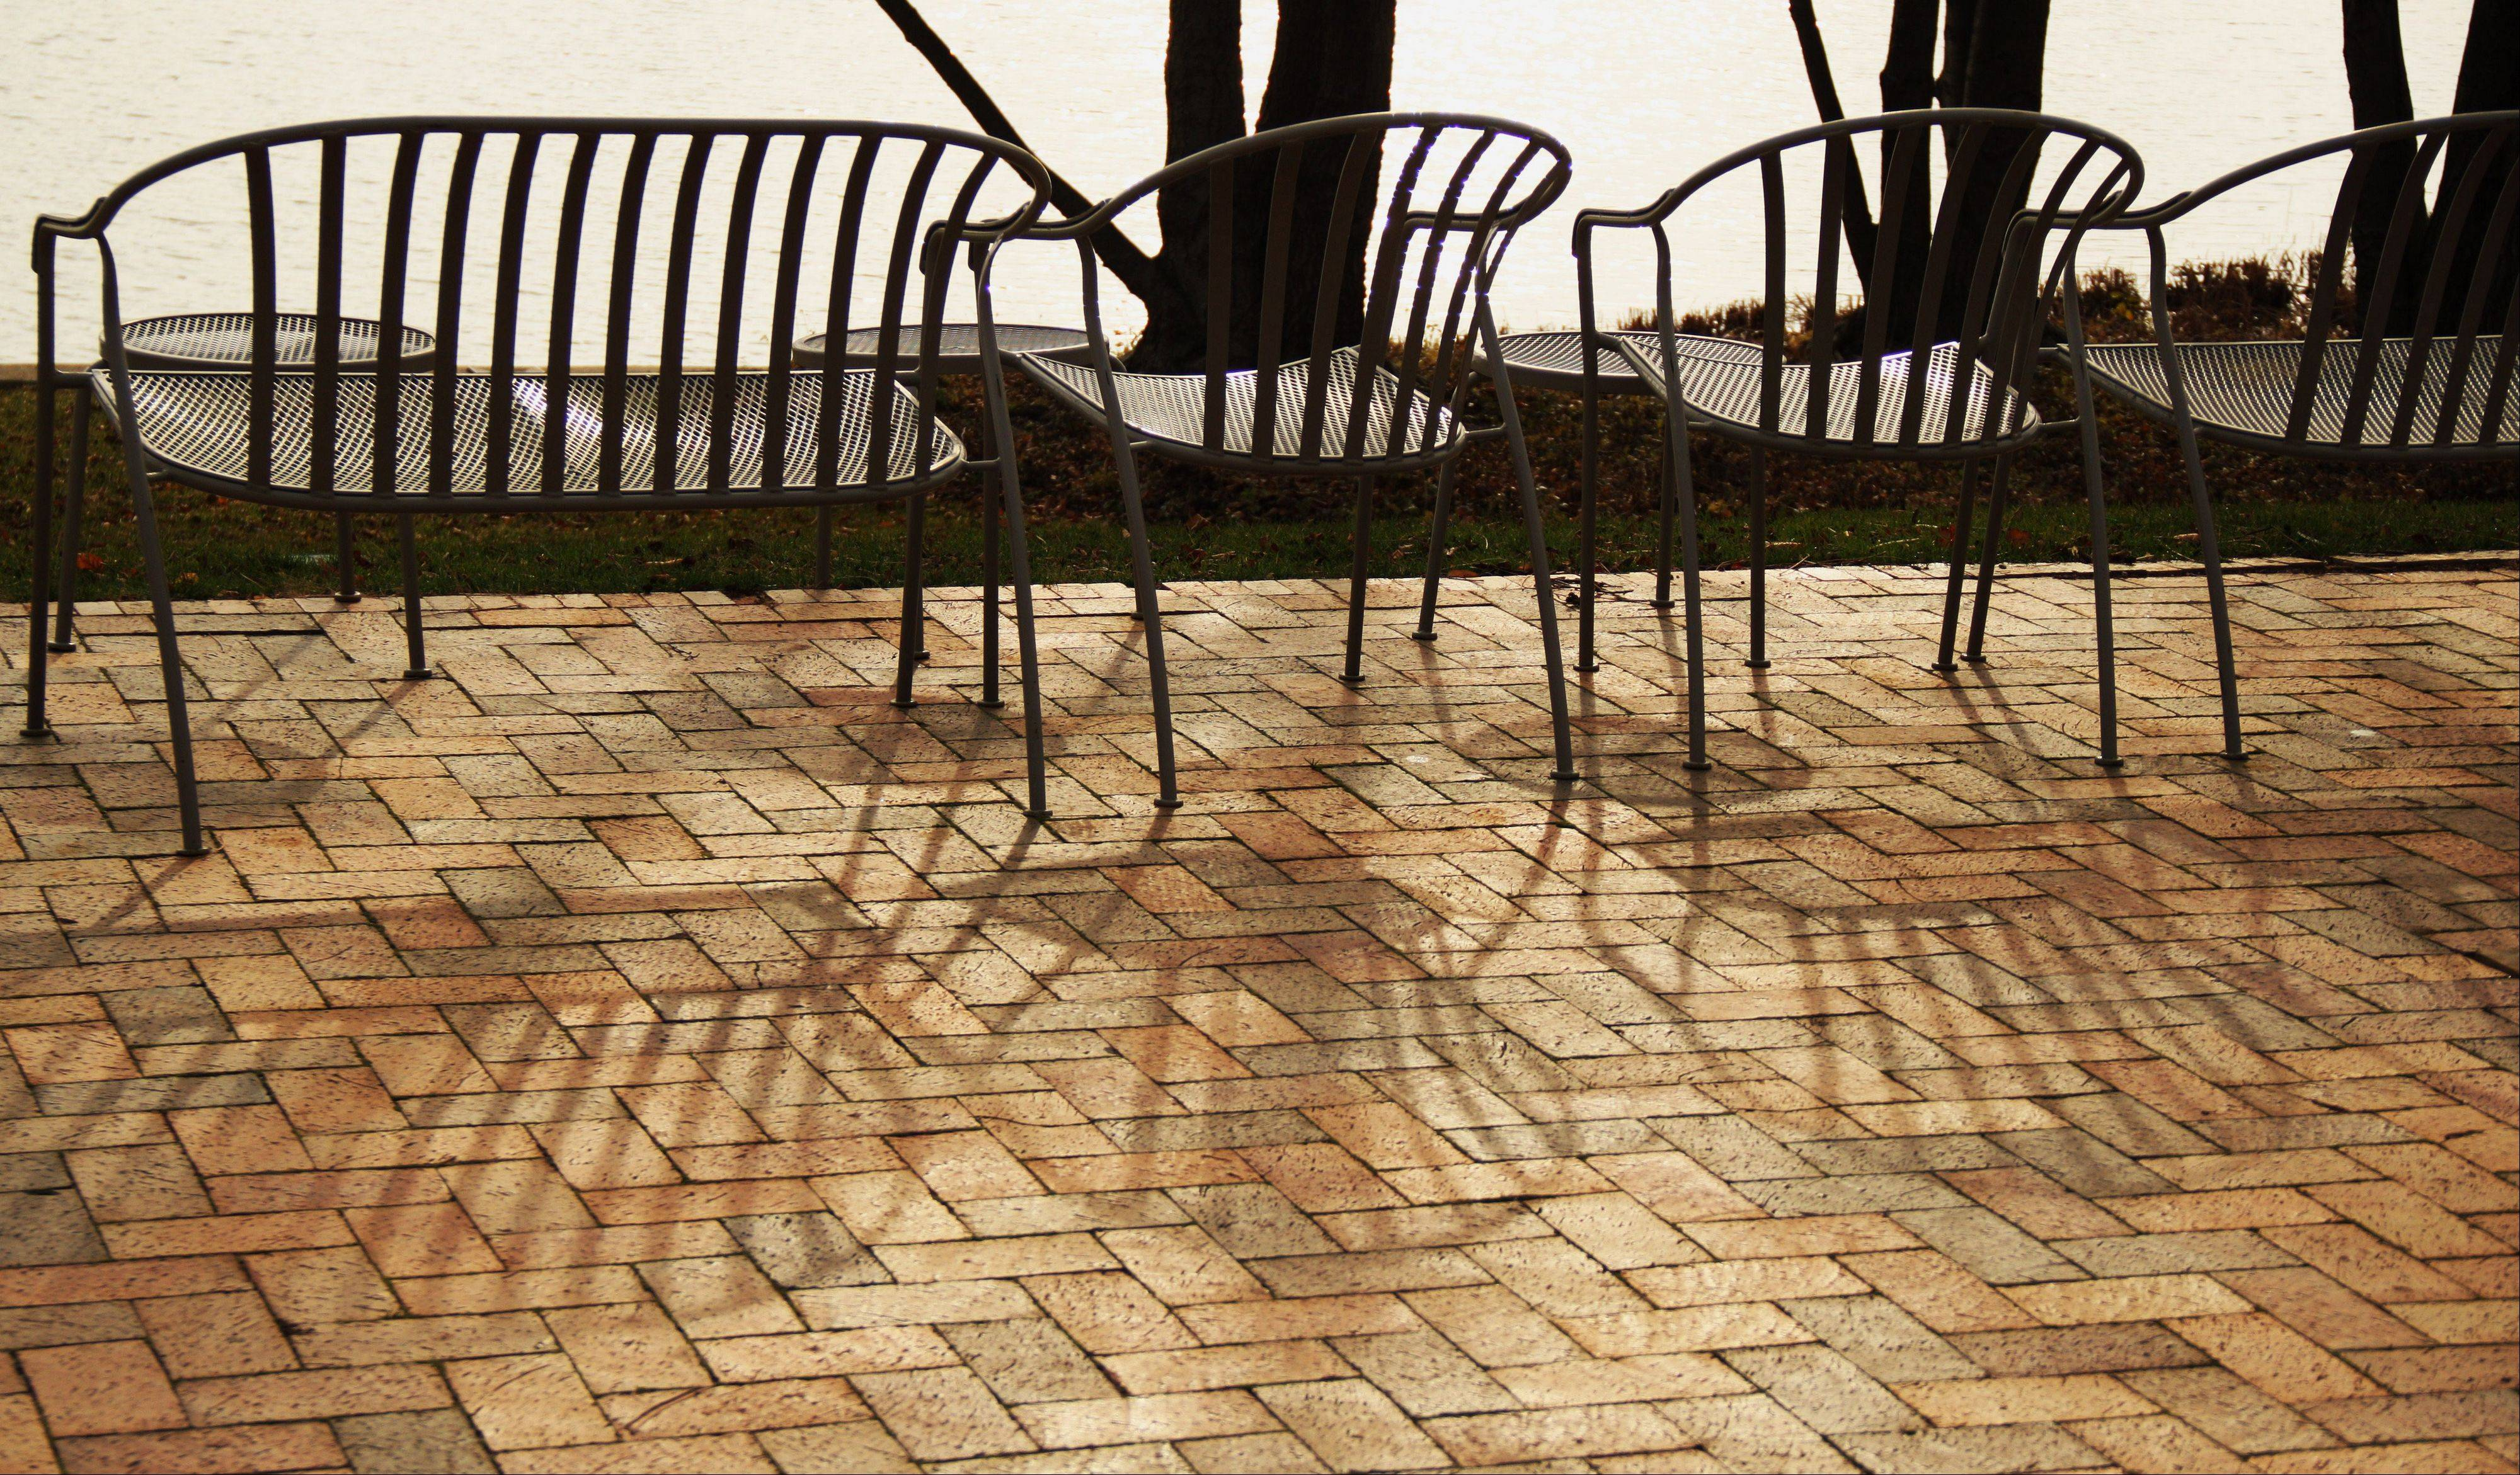 Th shadows from the chairs contrasts with the pattern of the bricks on a mild December day at the Chicago Botanic Garden.